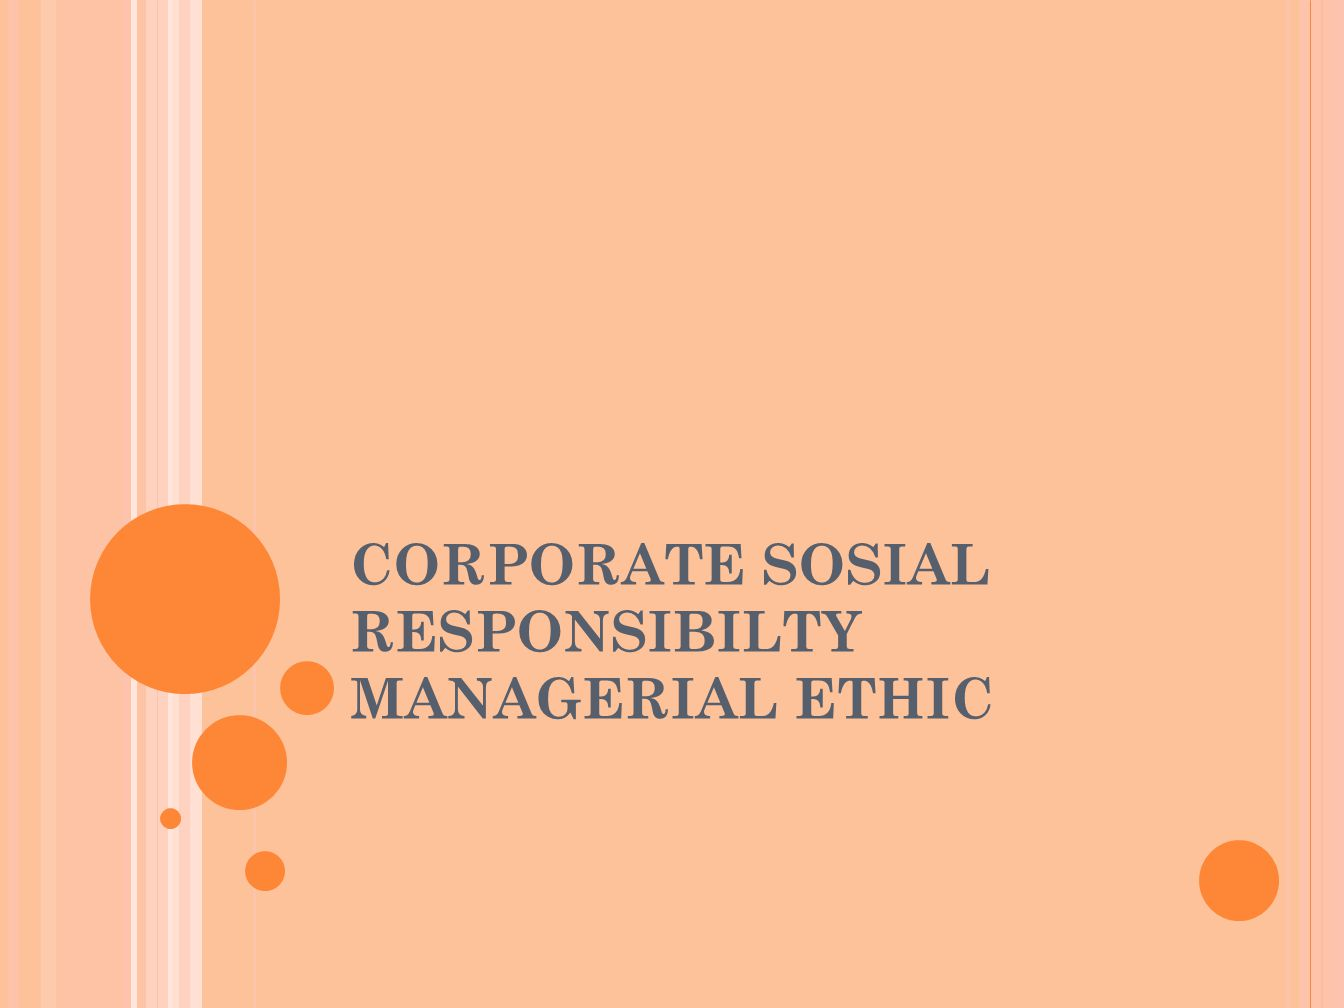 CORPORATE SOSIAL RESPONSIBILTY MANAGERIAL ETHIC